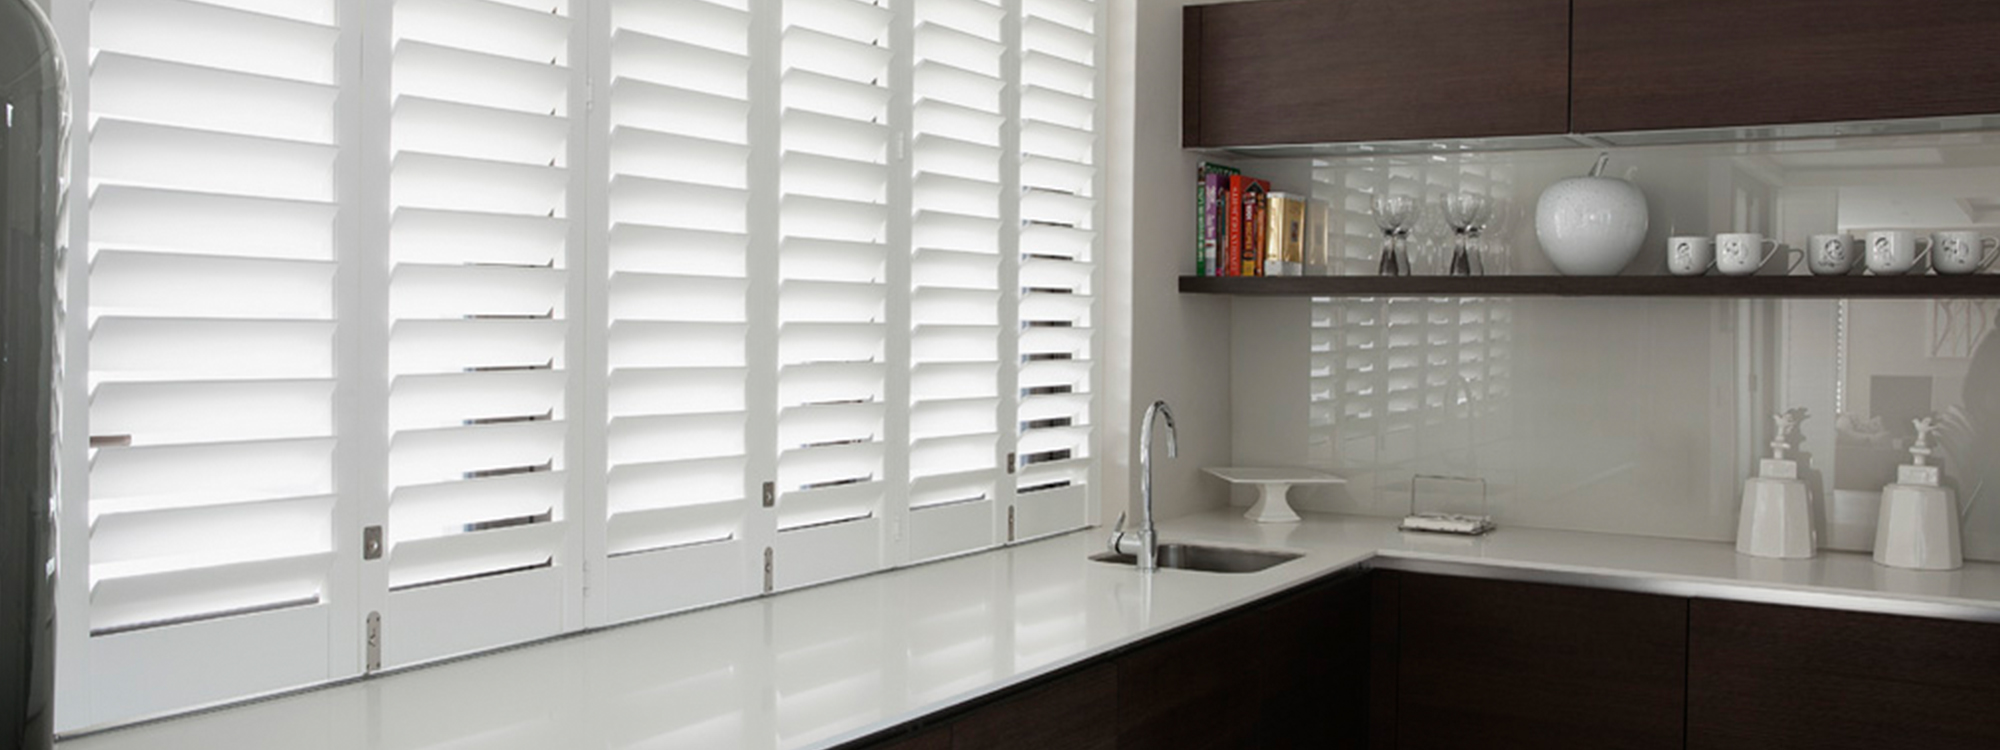 Decowood-shutters-kitchen-window-closed